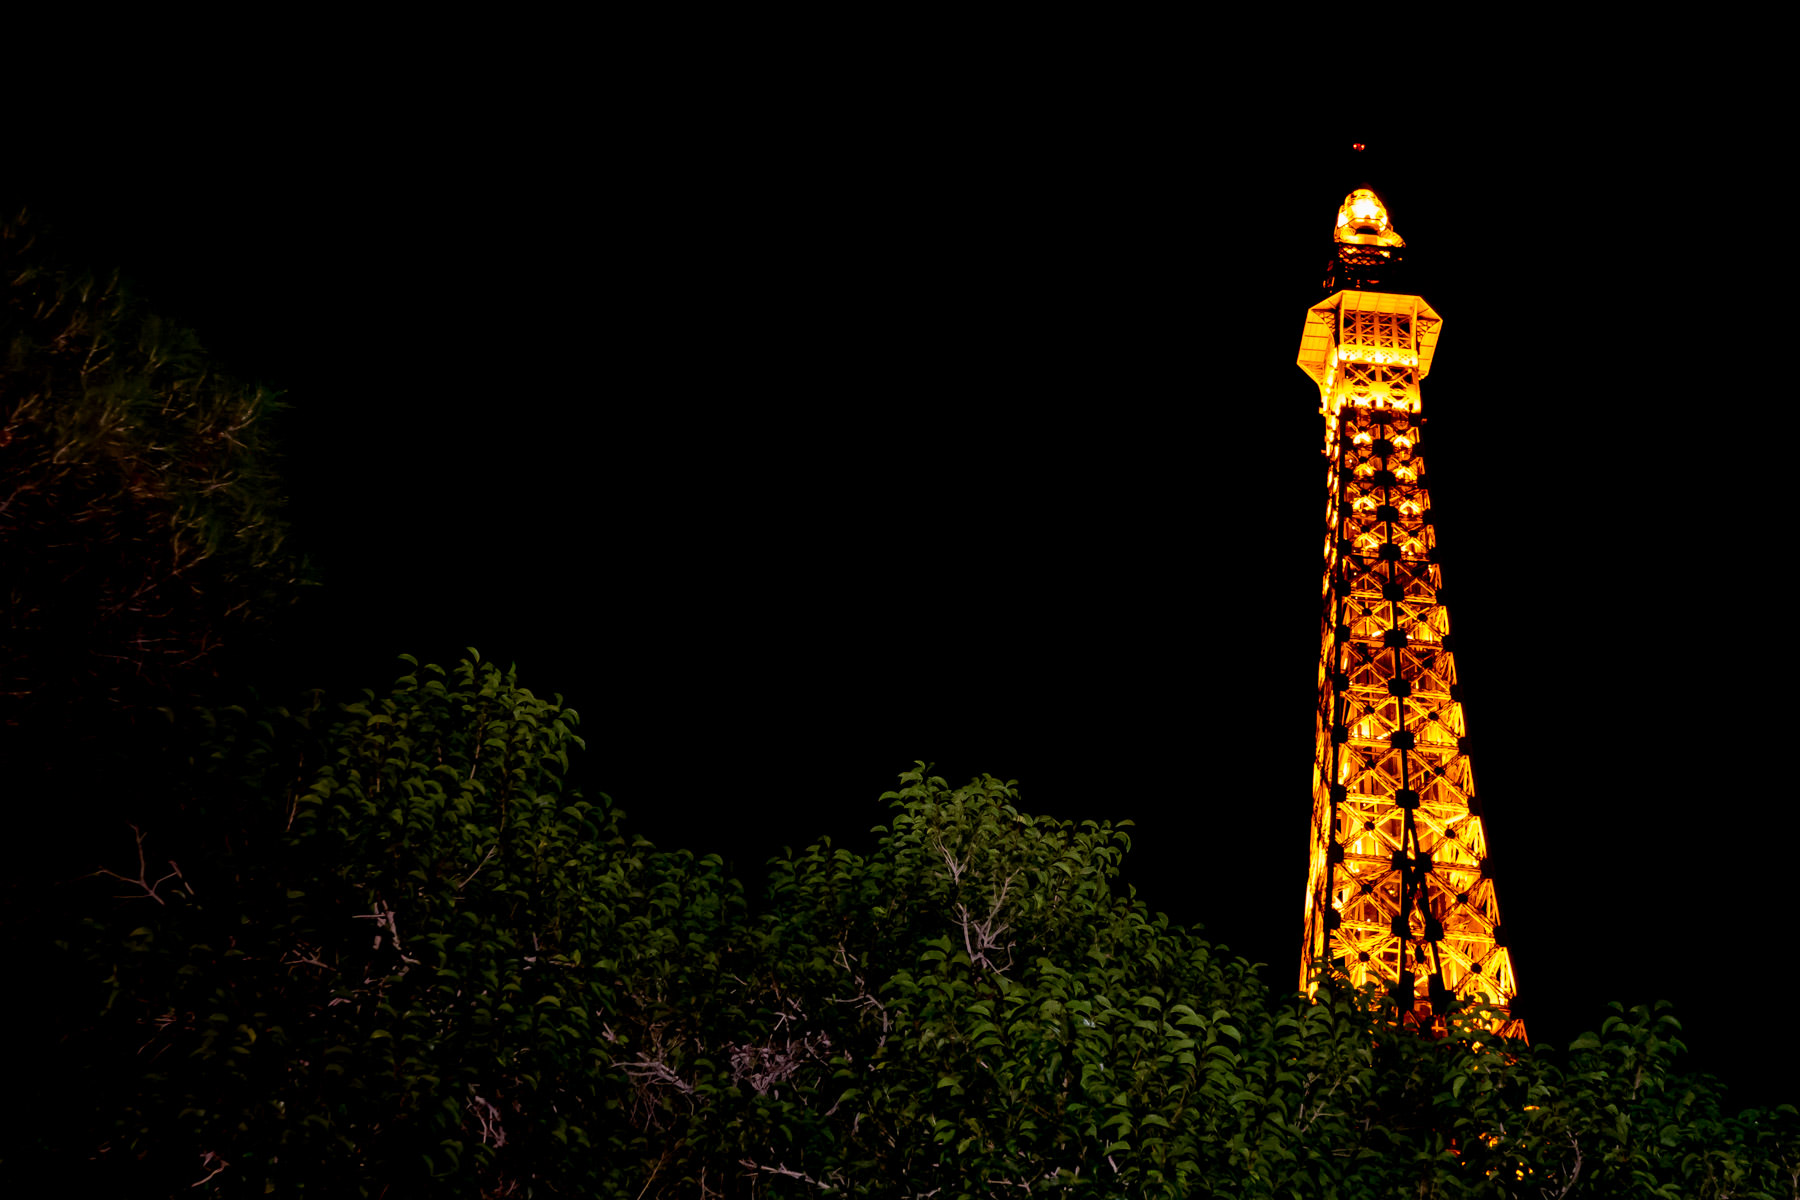 The replica Eiffel Tower at Paris Las Vegas rises above some nearby trees into the nighttime Nevada sky.